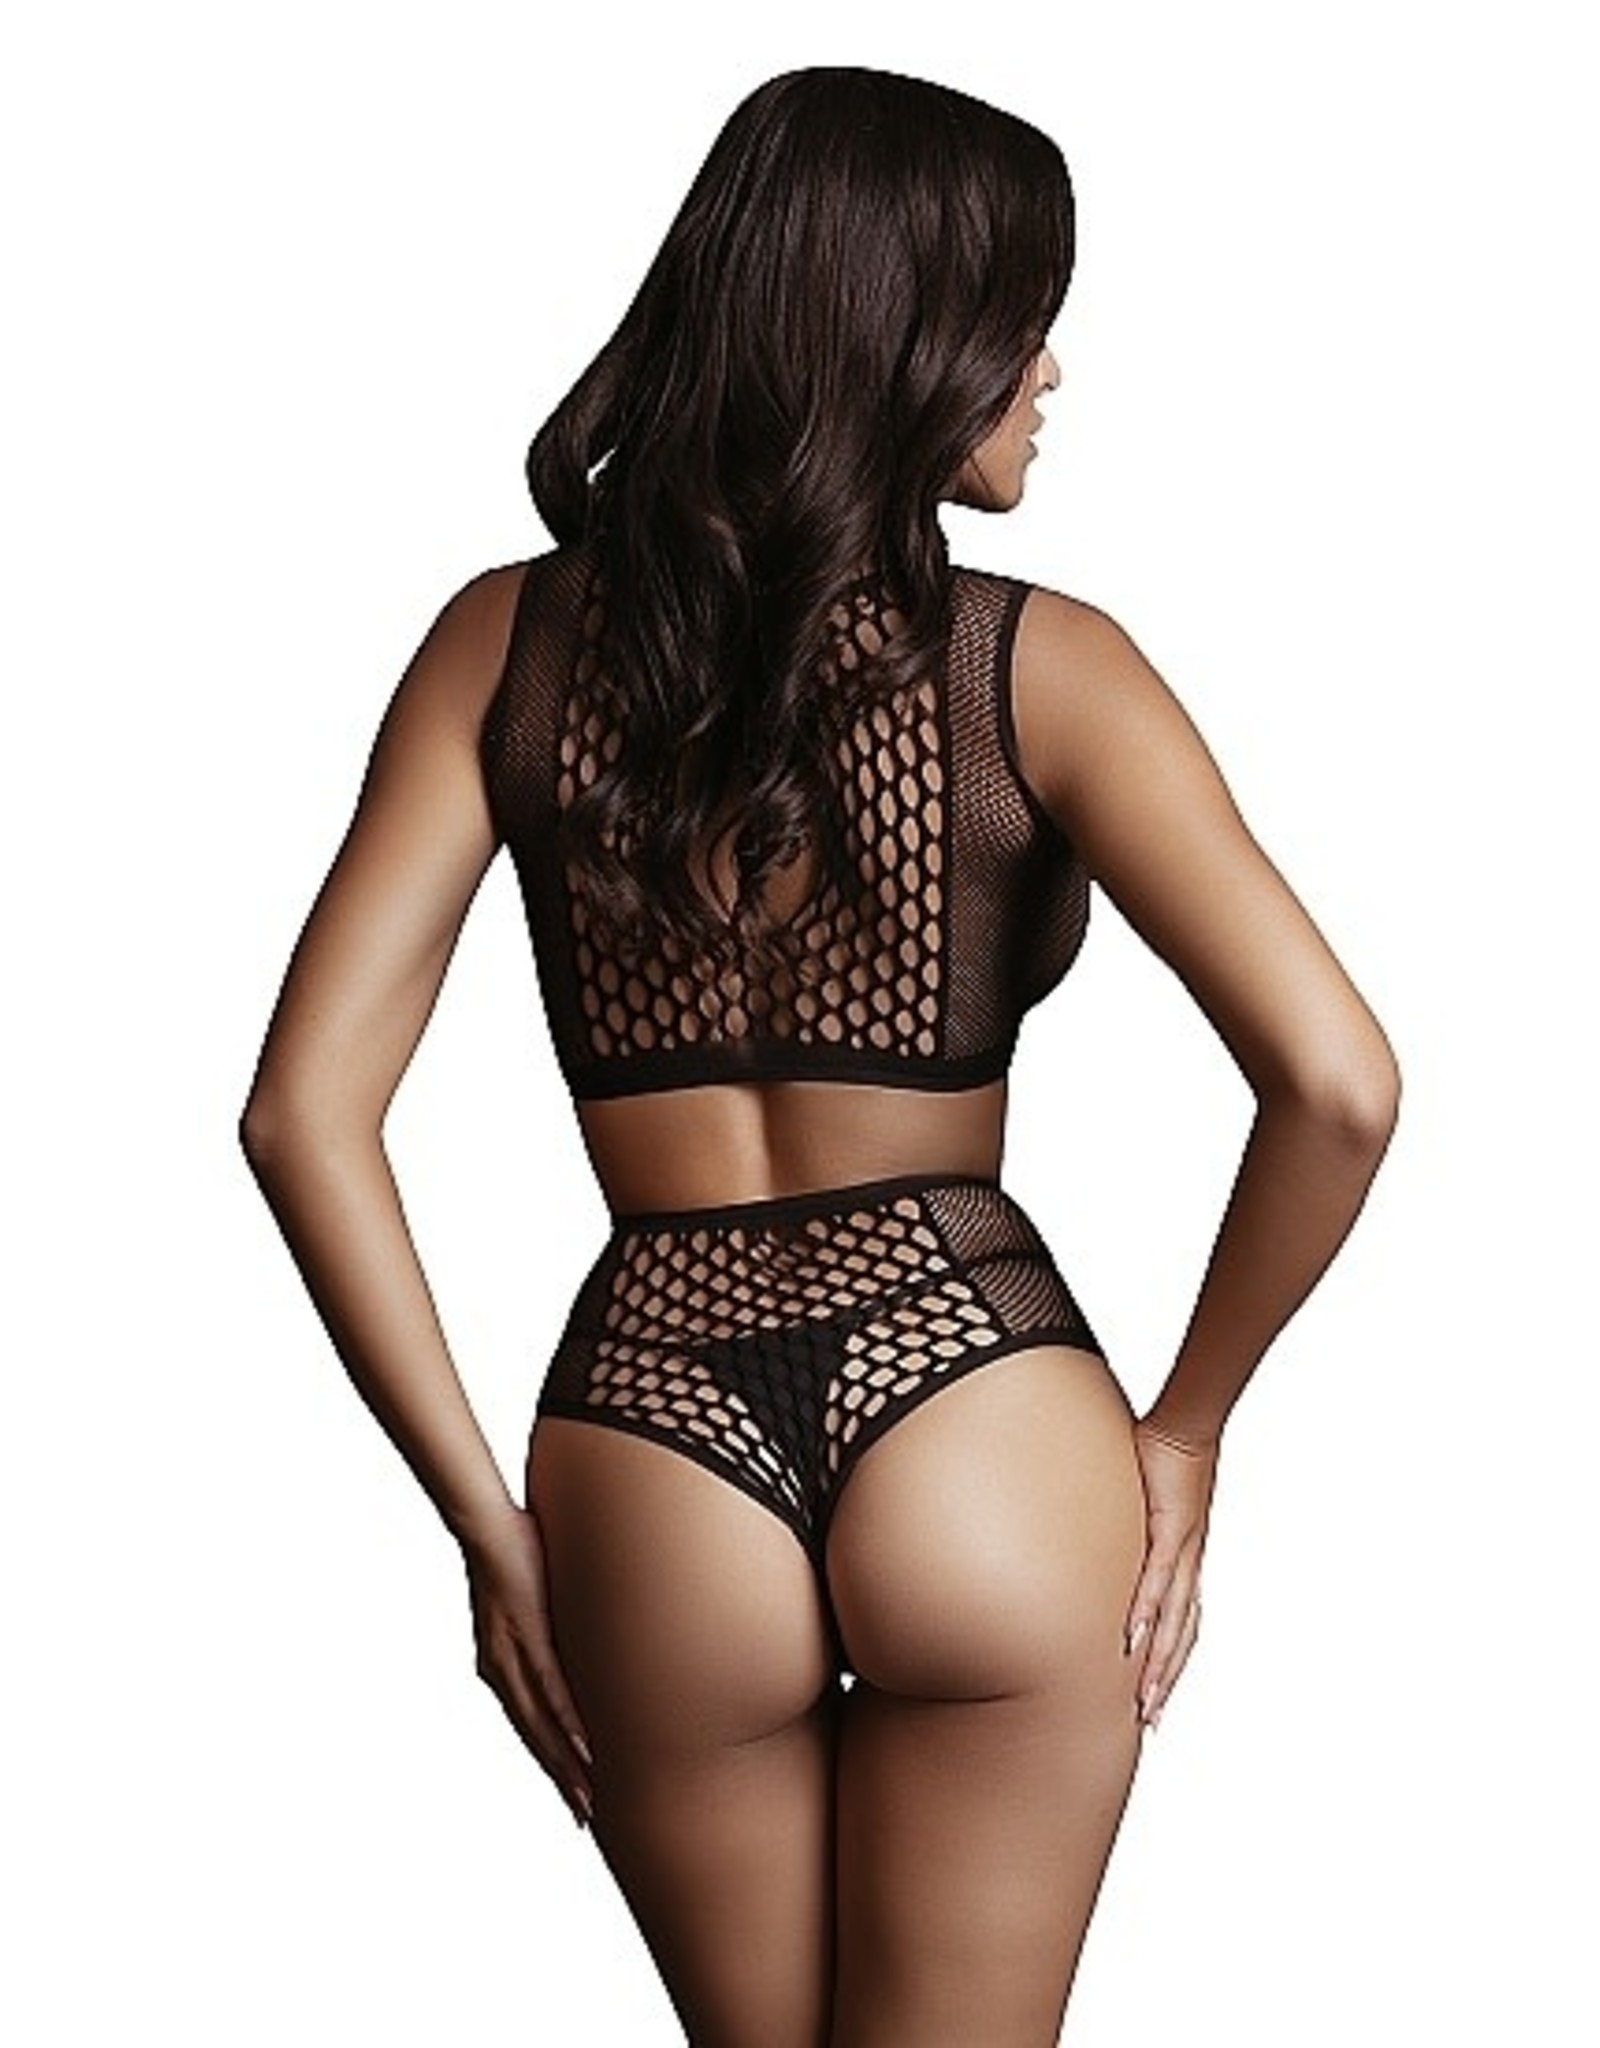 LE DESIR LE DESIR - DUO NET KEY-HOLE BRA SET - BLACK - ONE SIZE